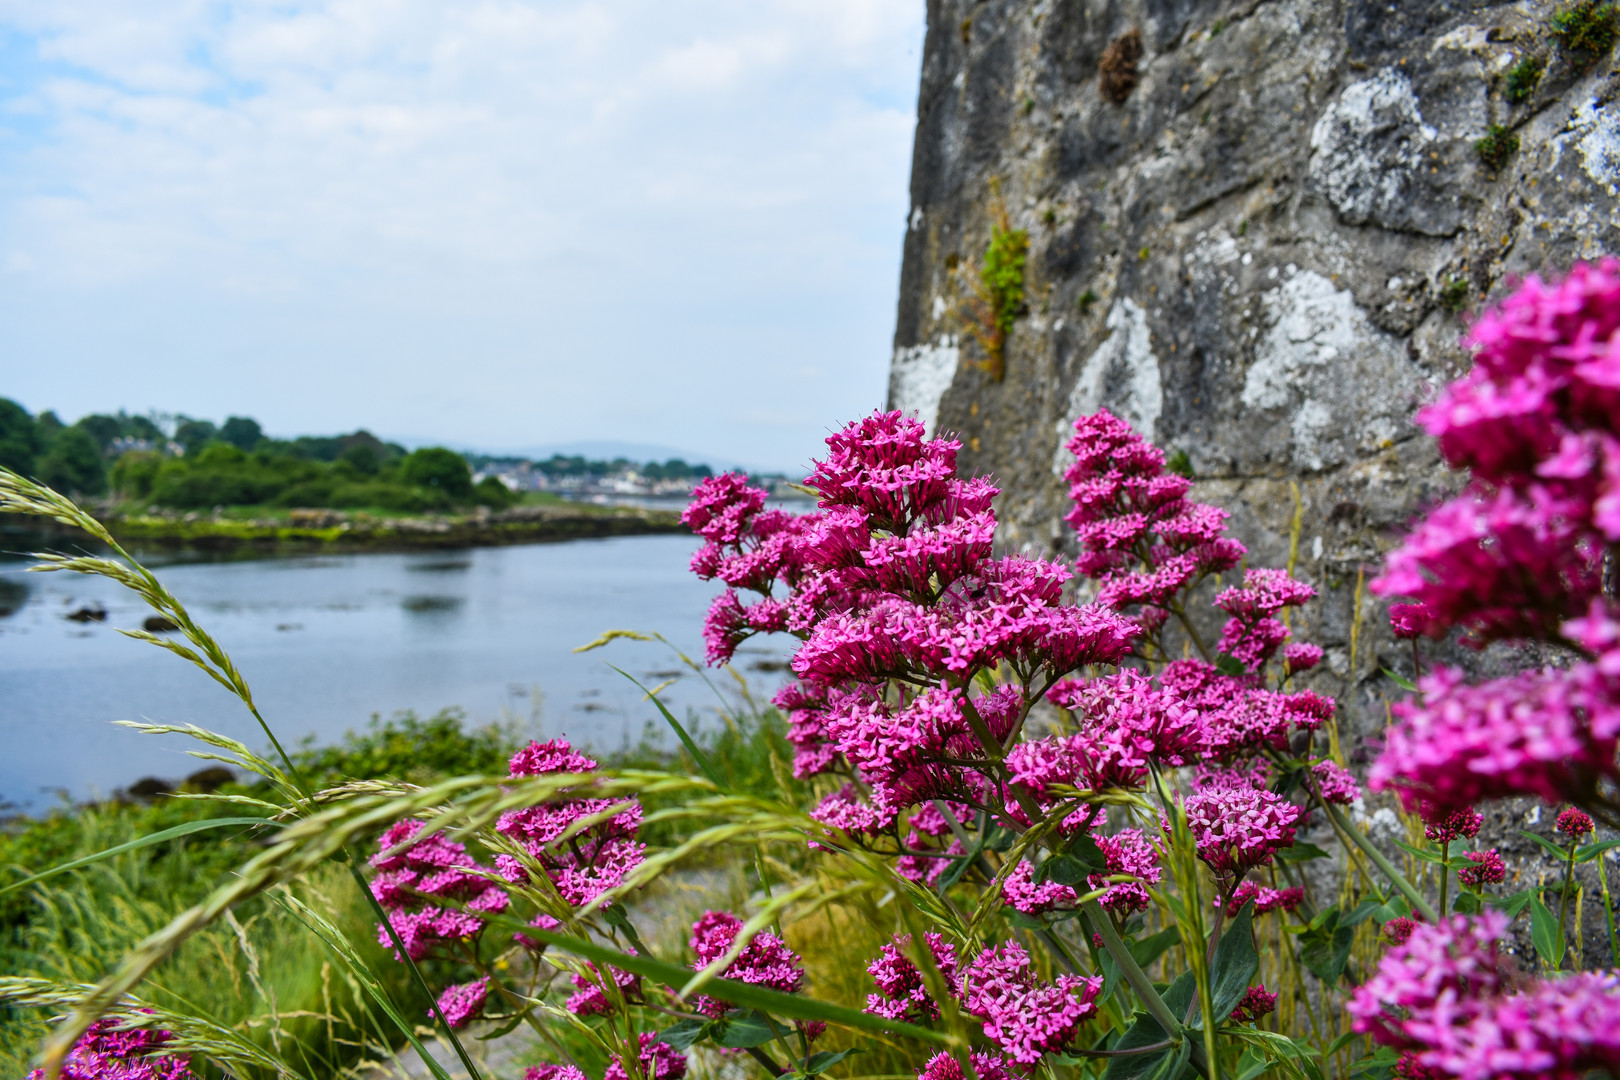 Vibrant pink flowers add a splash of color to the canvas surrounding Dunguaire Castle in Galway, Ireland.